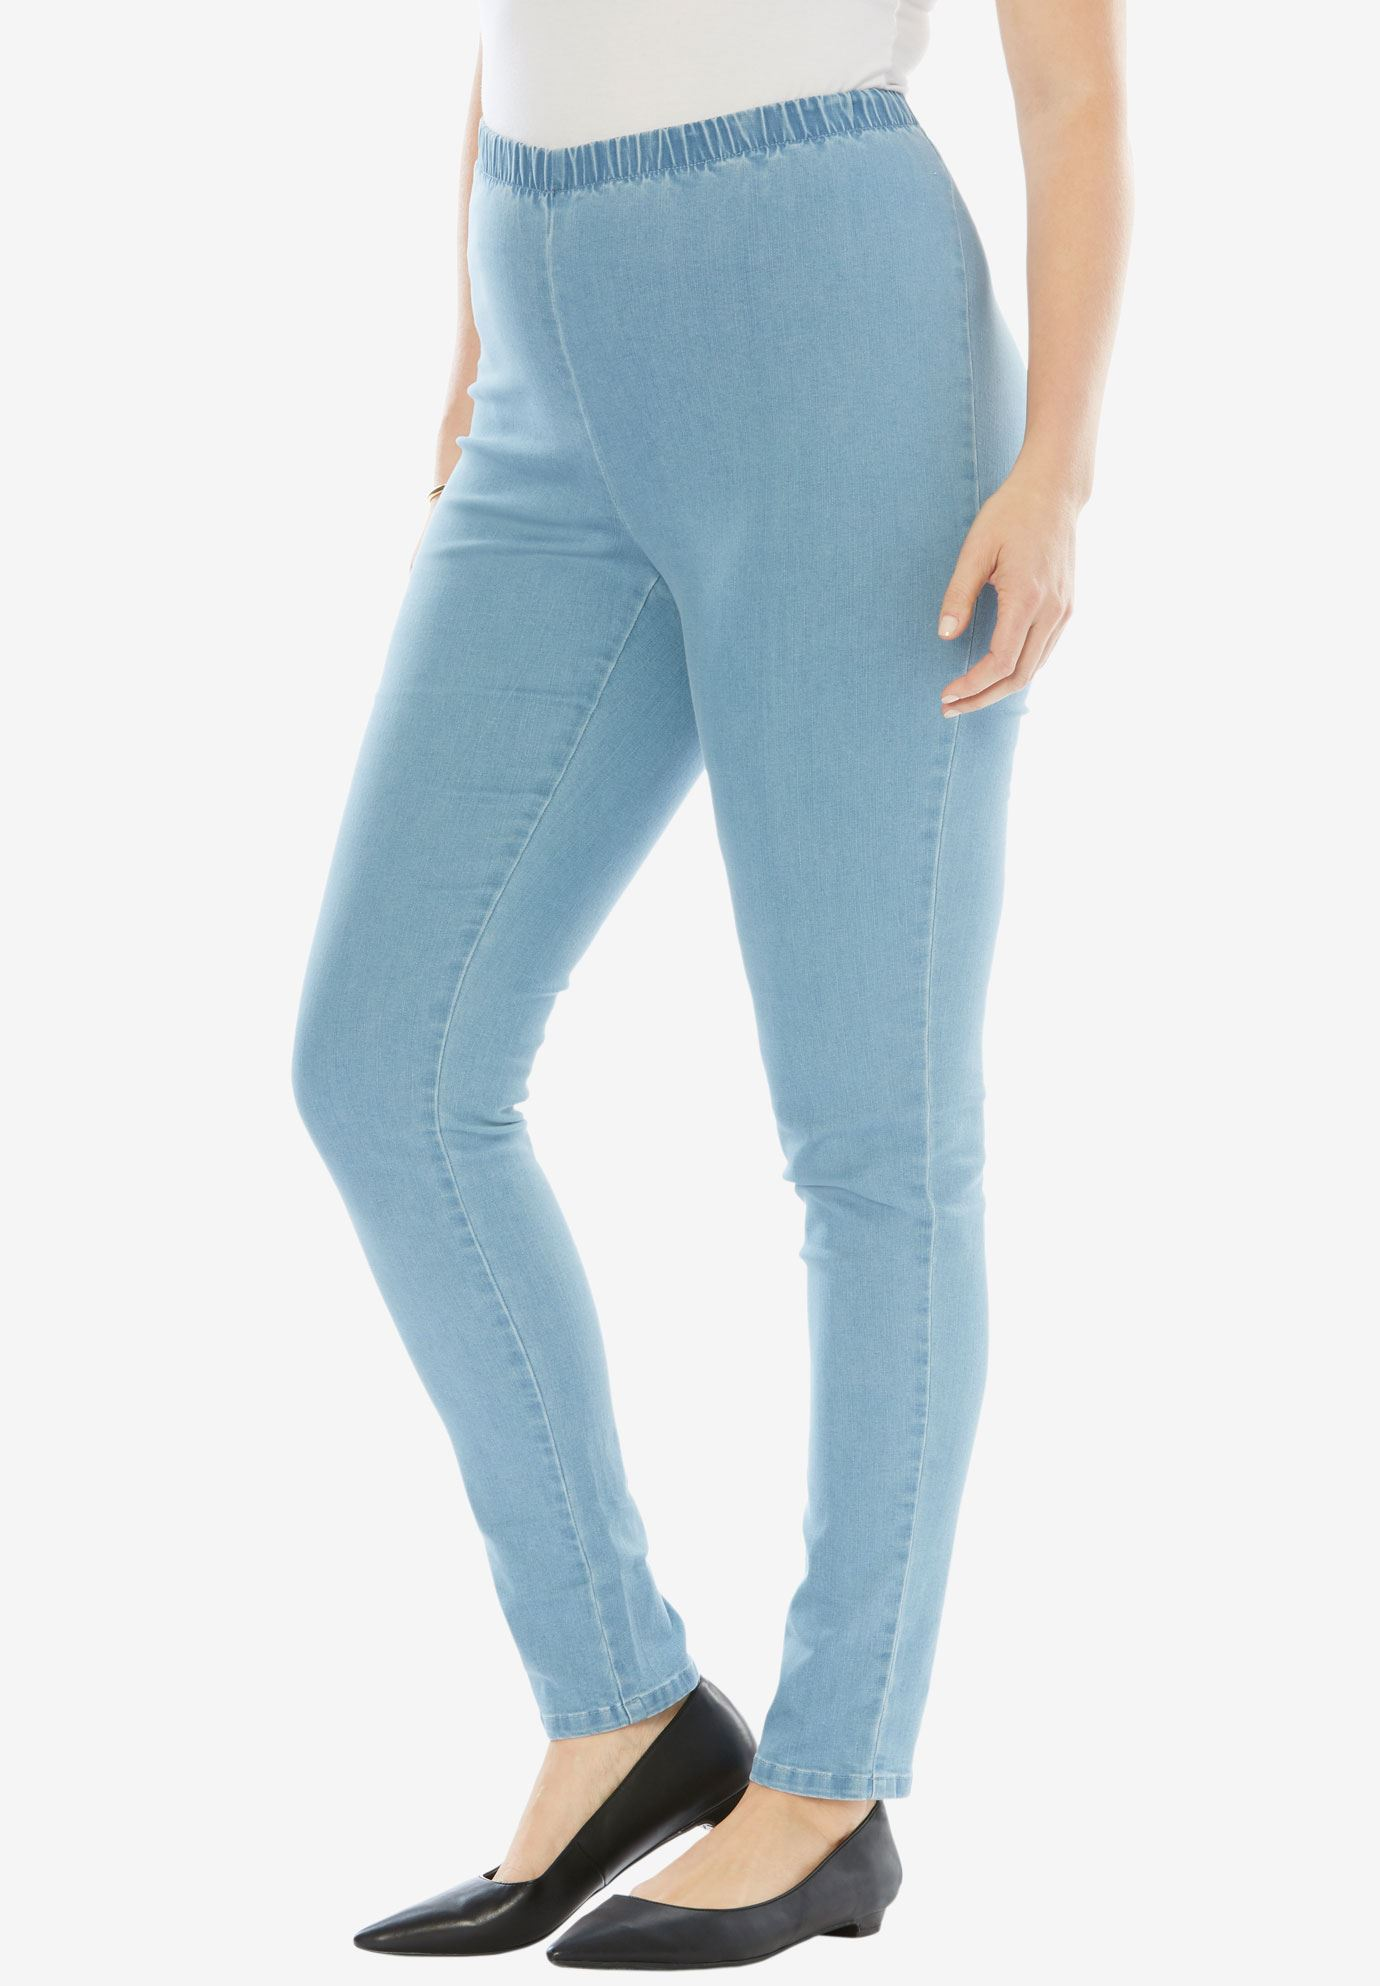 Choose from a selection of leggings that look like jeans from stretch jean leggings and more. Find your perfect look at New York & Company. Choose from a selection of leggings that look like jeans from stretch jean leggings and more. Soho Jeans - NY&C Runway - Super Stretch - Legging. $ Buy 1 Get 1 50% Off. New Arrival.